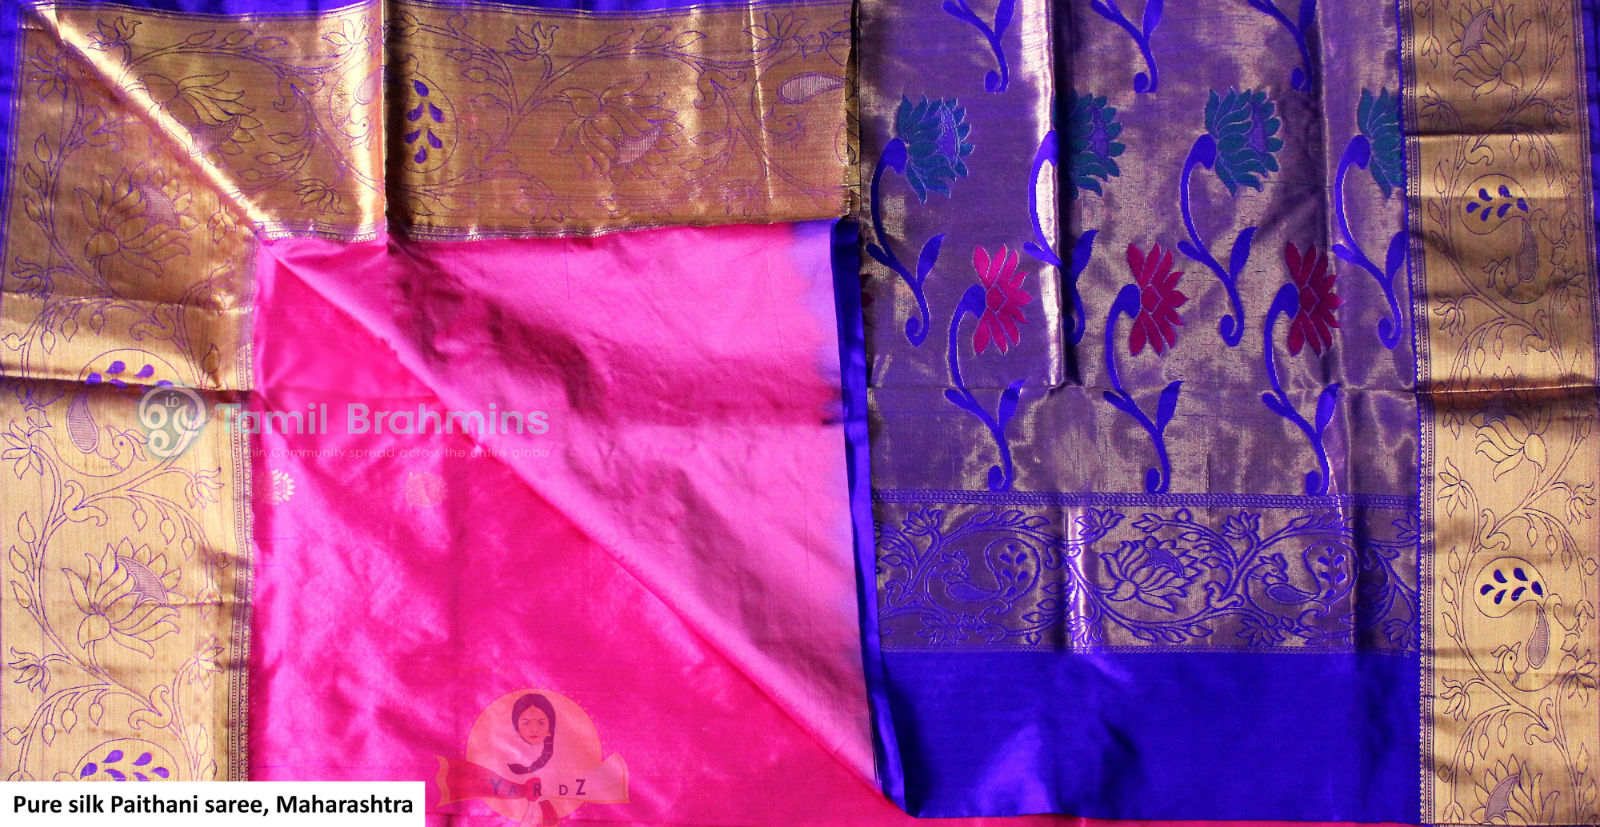 paithini-saree-jpg.7060 9 Yardz - Let's go the Madisar Style